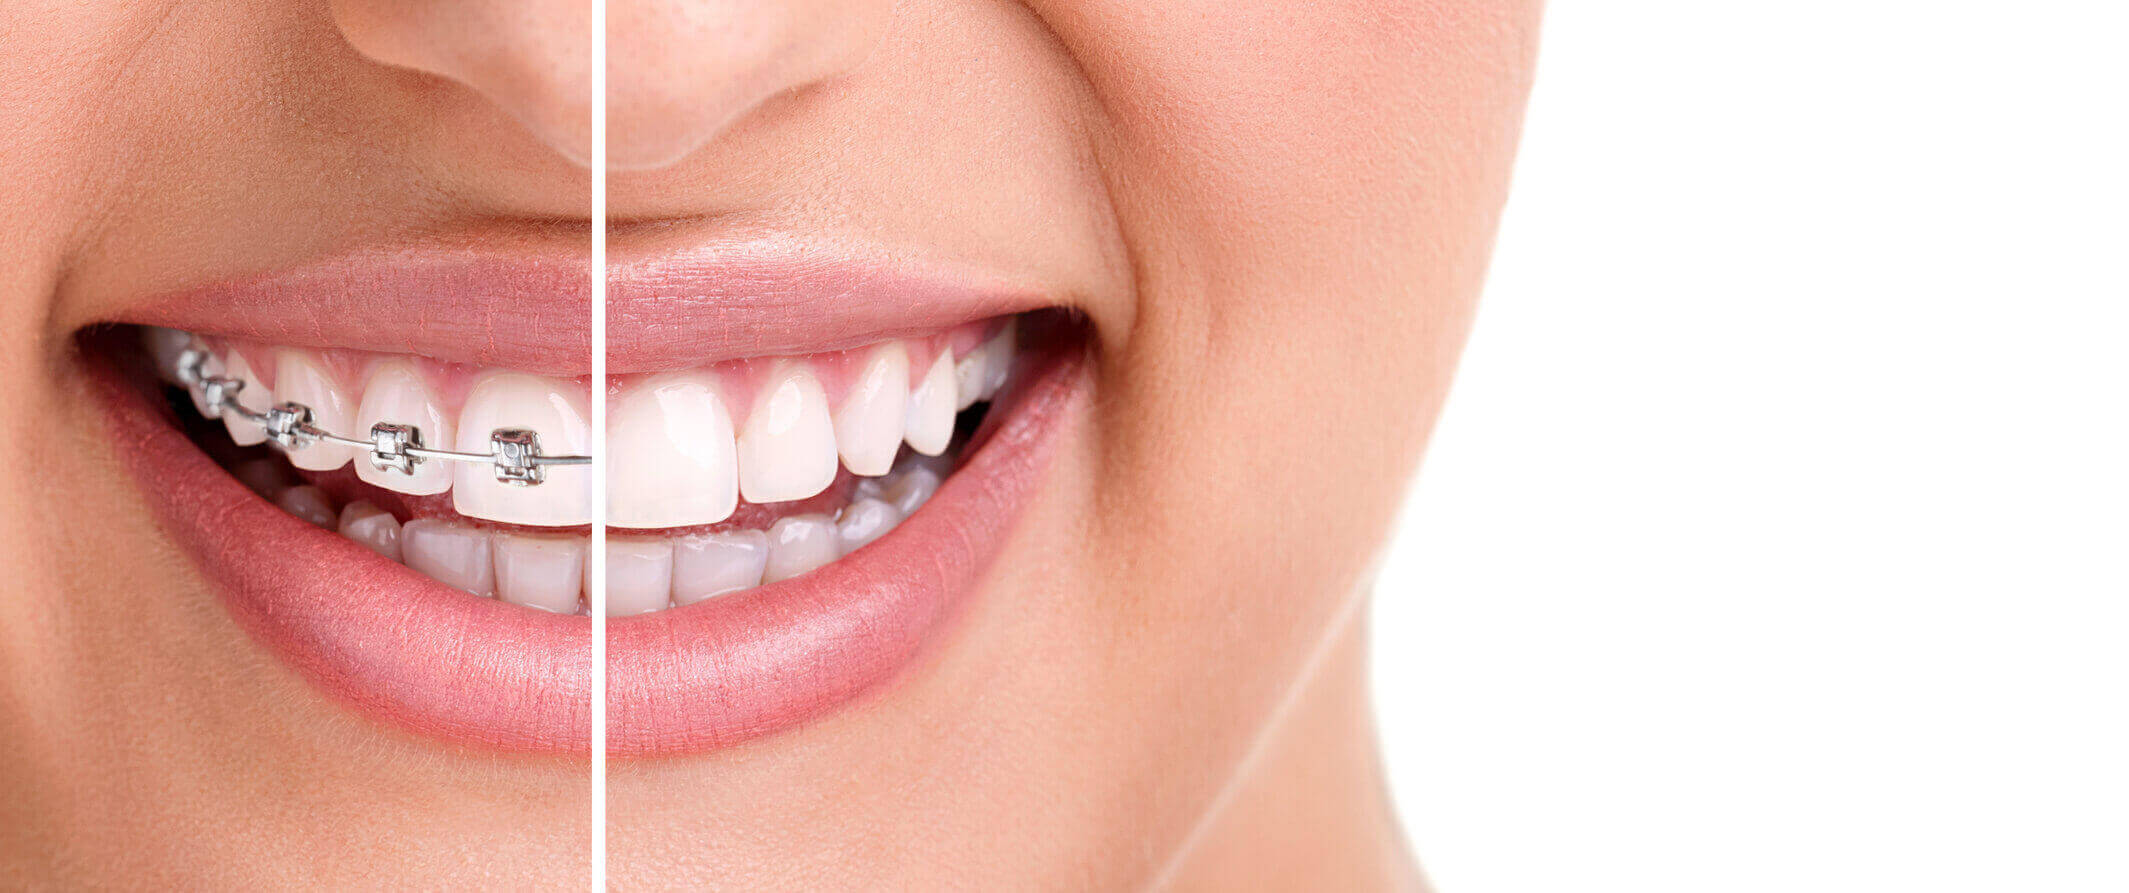 Orthodontic Treatment in Nagpur